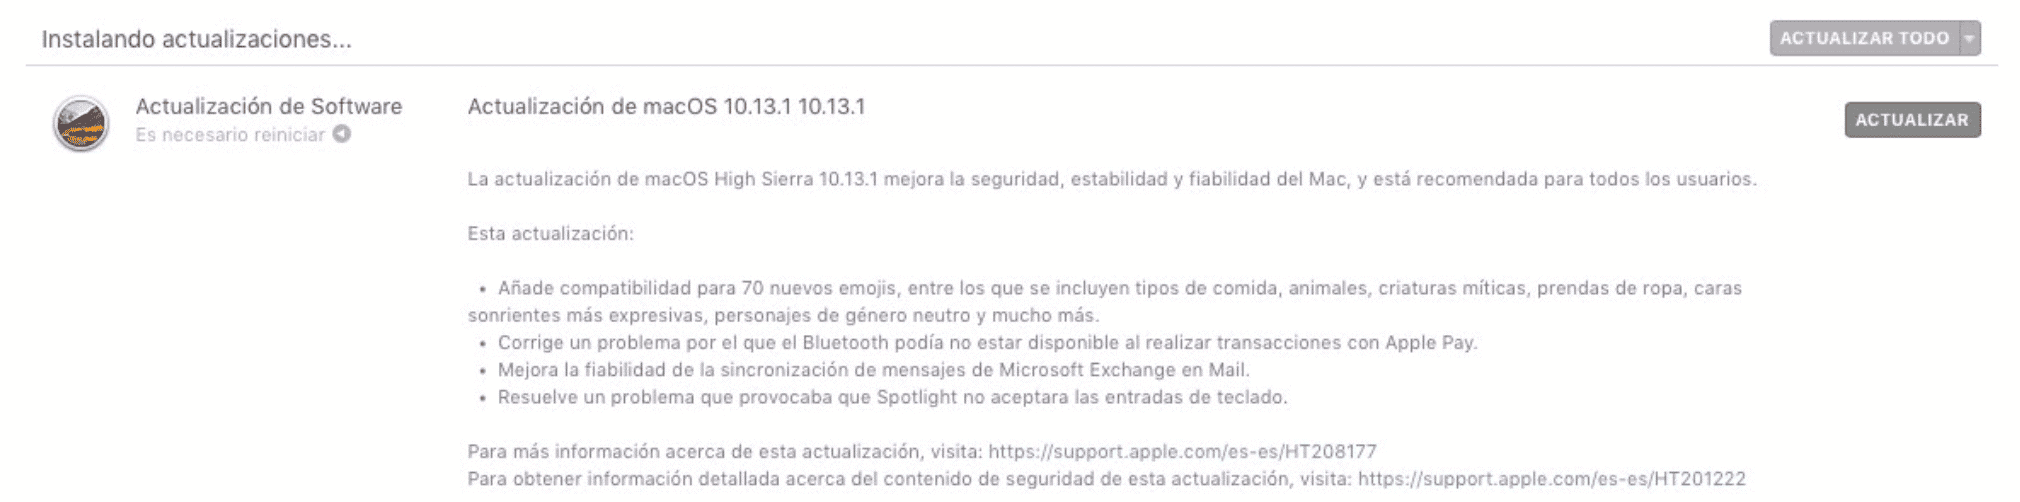 Apple publica macOS High Sierra 10.13.1